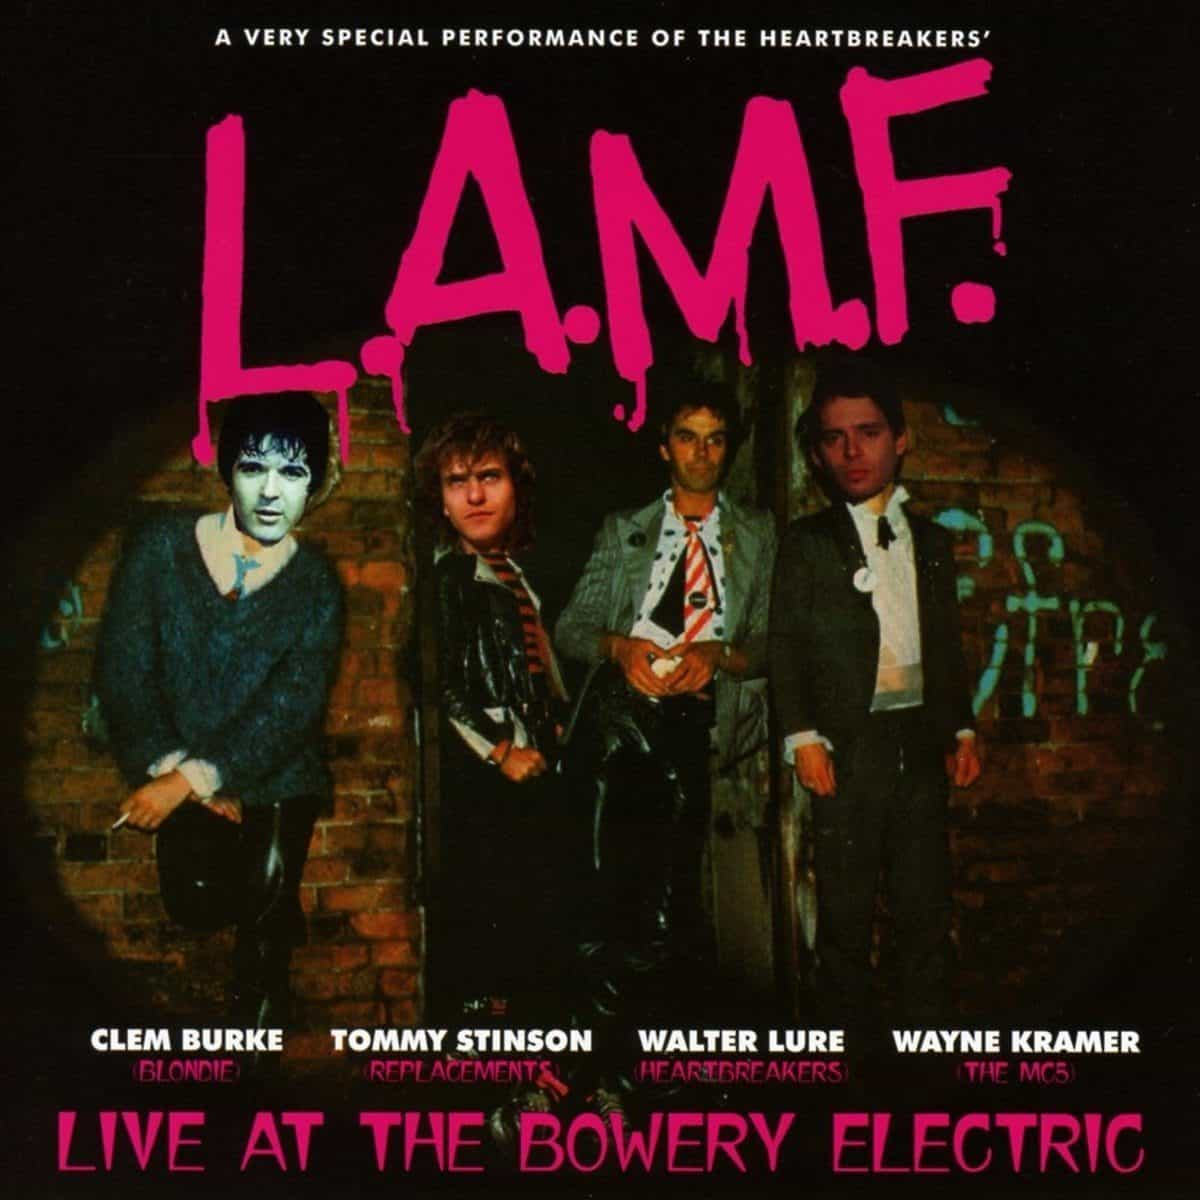 L.A.M.F. – Live at the Bowery Electric (DVD)